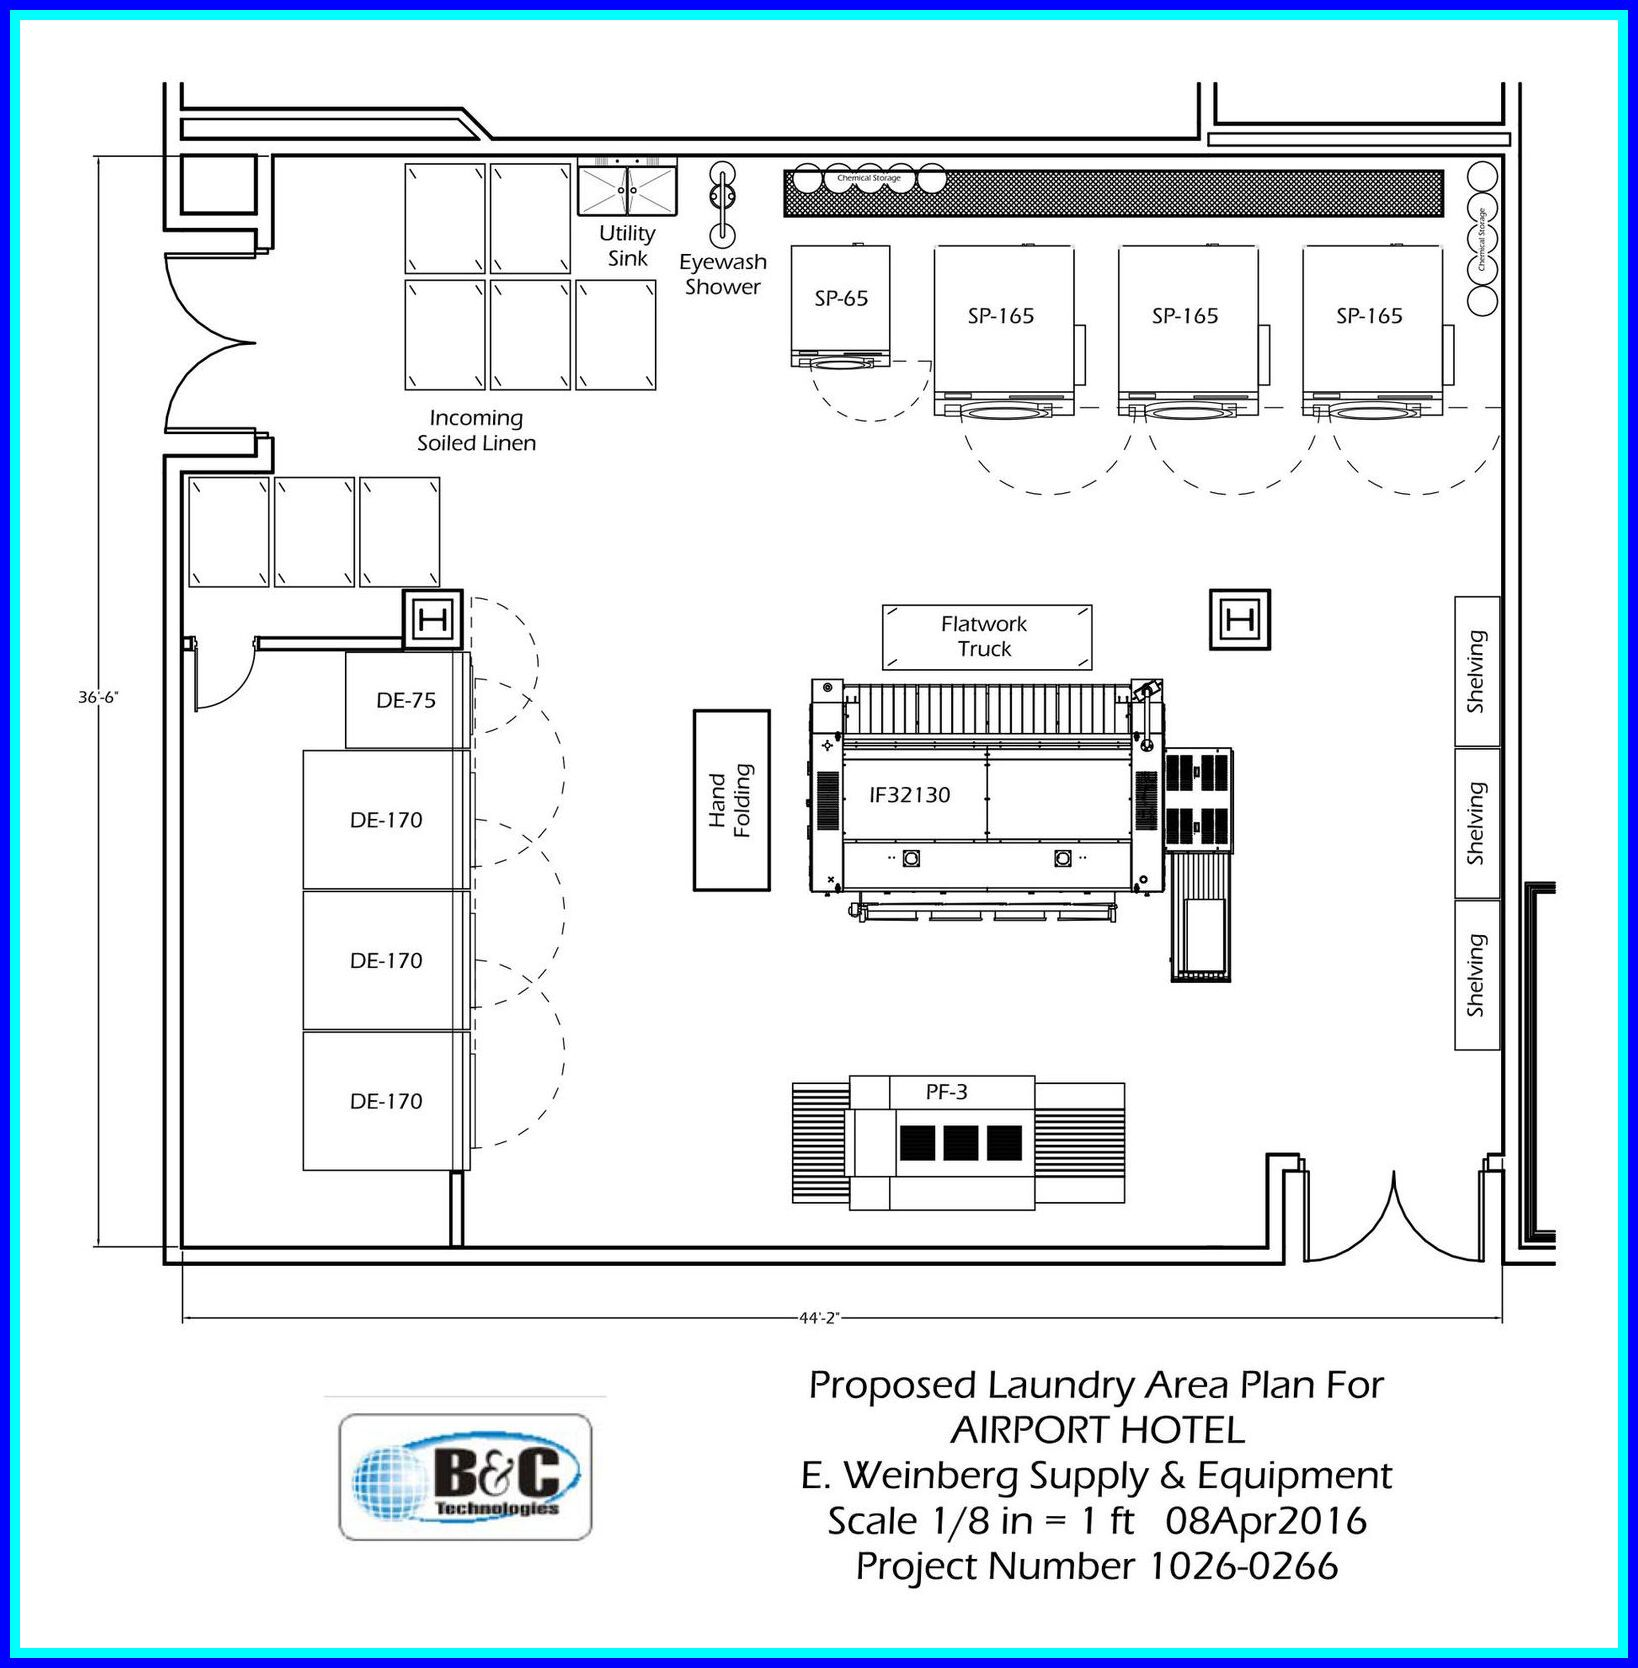 99 Reference Of Laundry Room Plan Hotel Room Planning Elegant Laundry Room Laundry Room Flooring